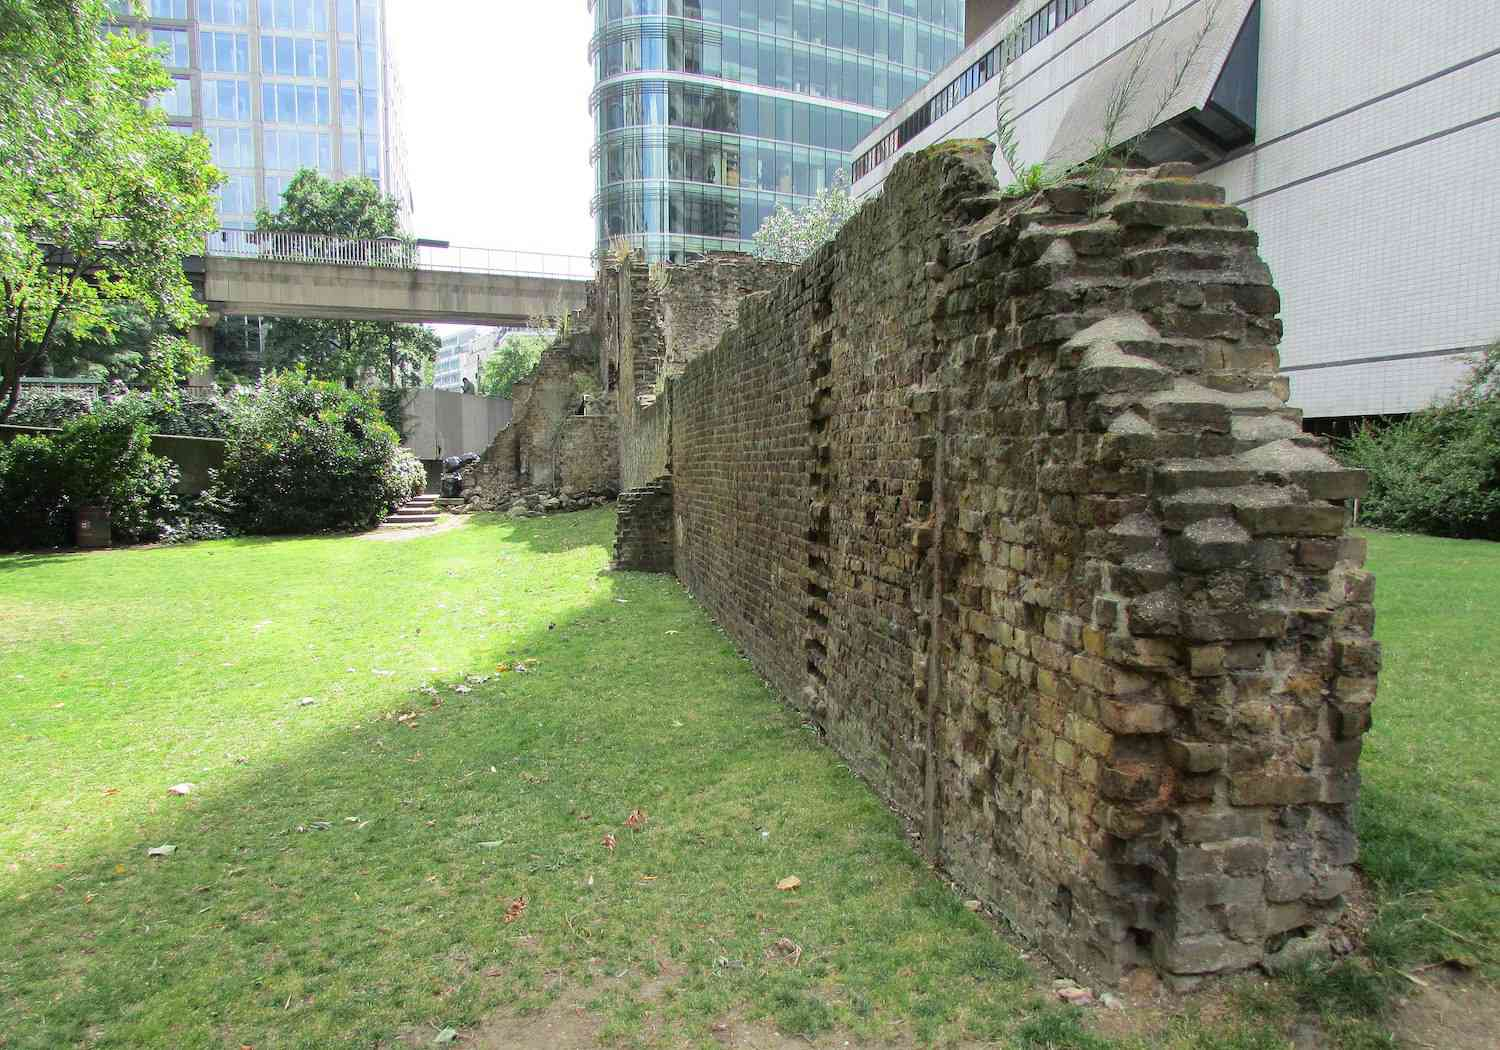 A portion of the Roman London Wall in front of skyscrapers